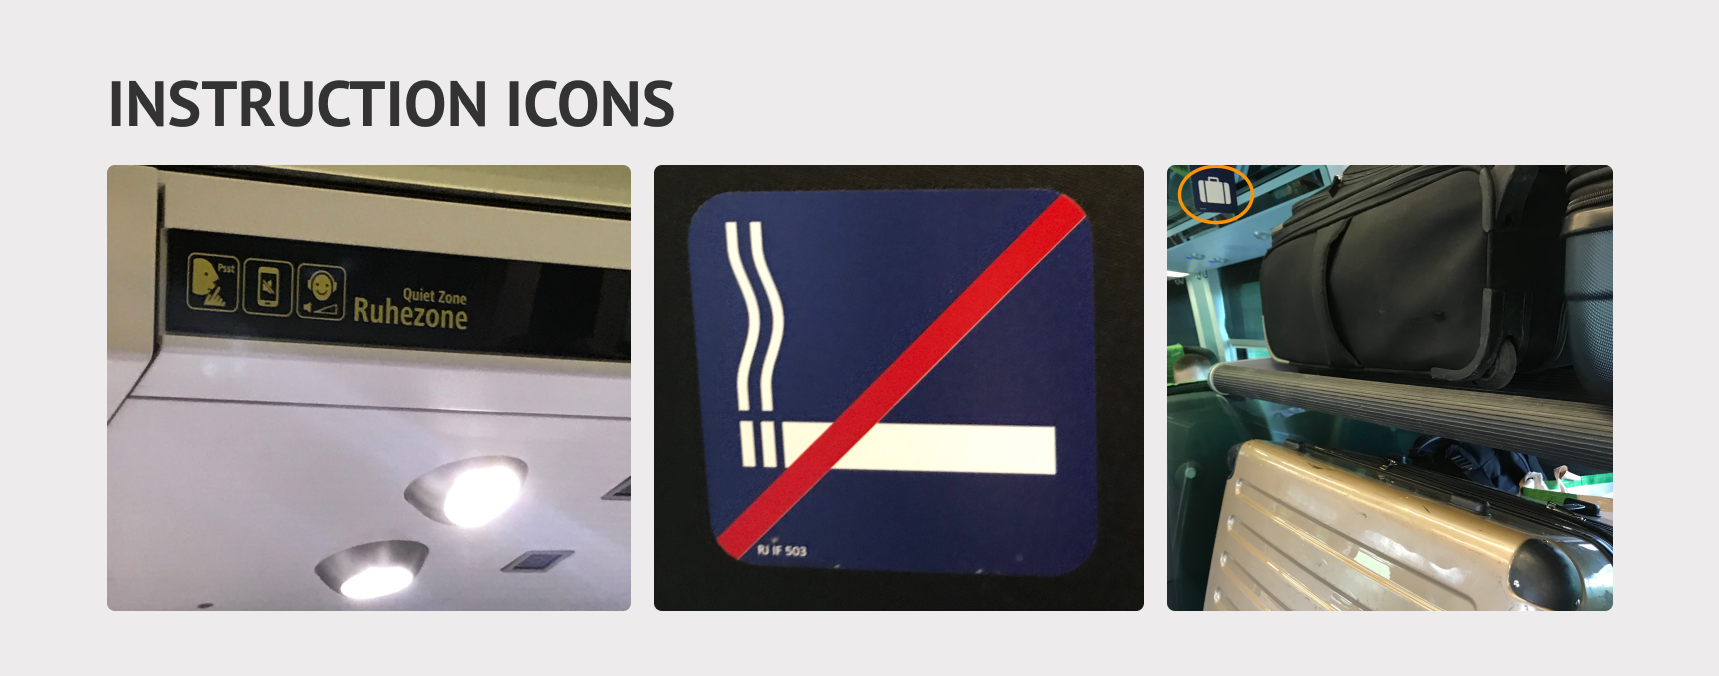 Quiet Zone, no smoking, and luggage area icons on the train.